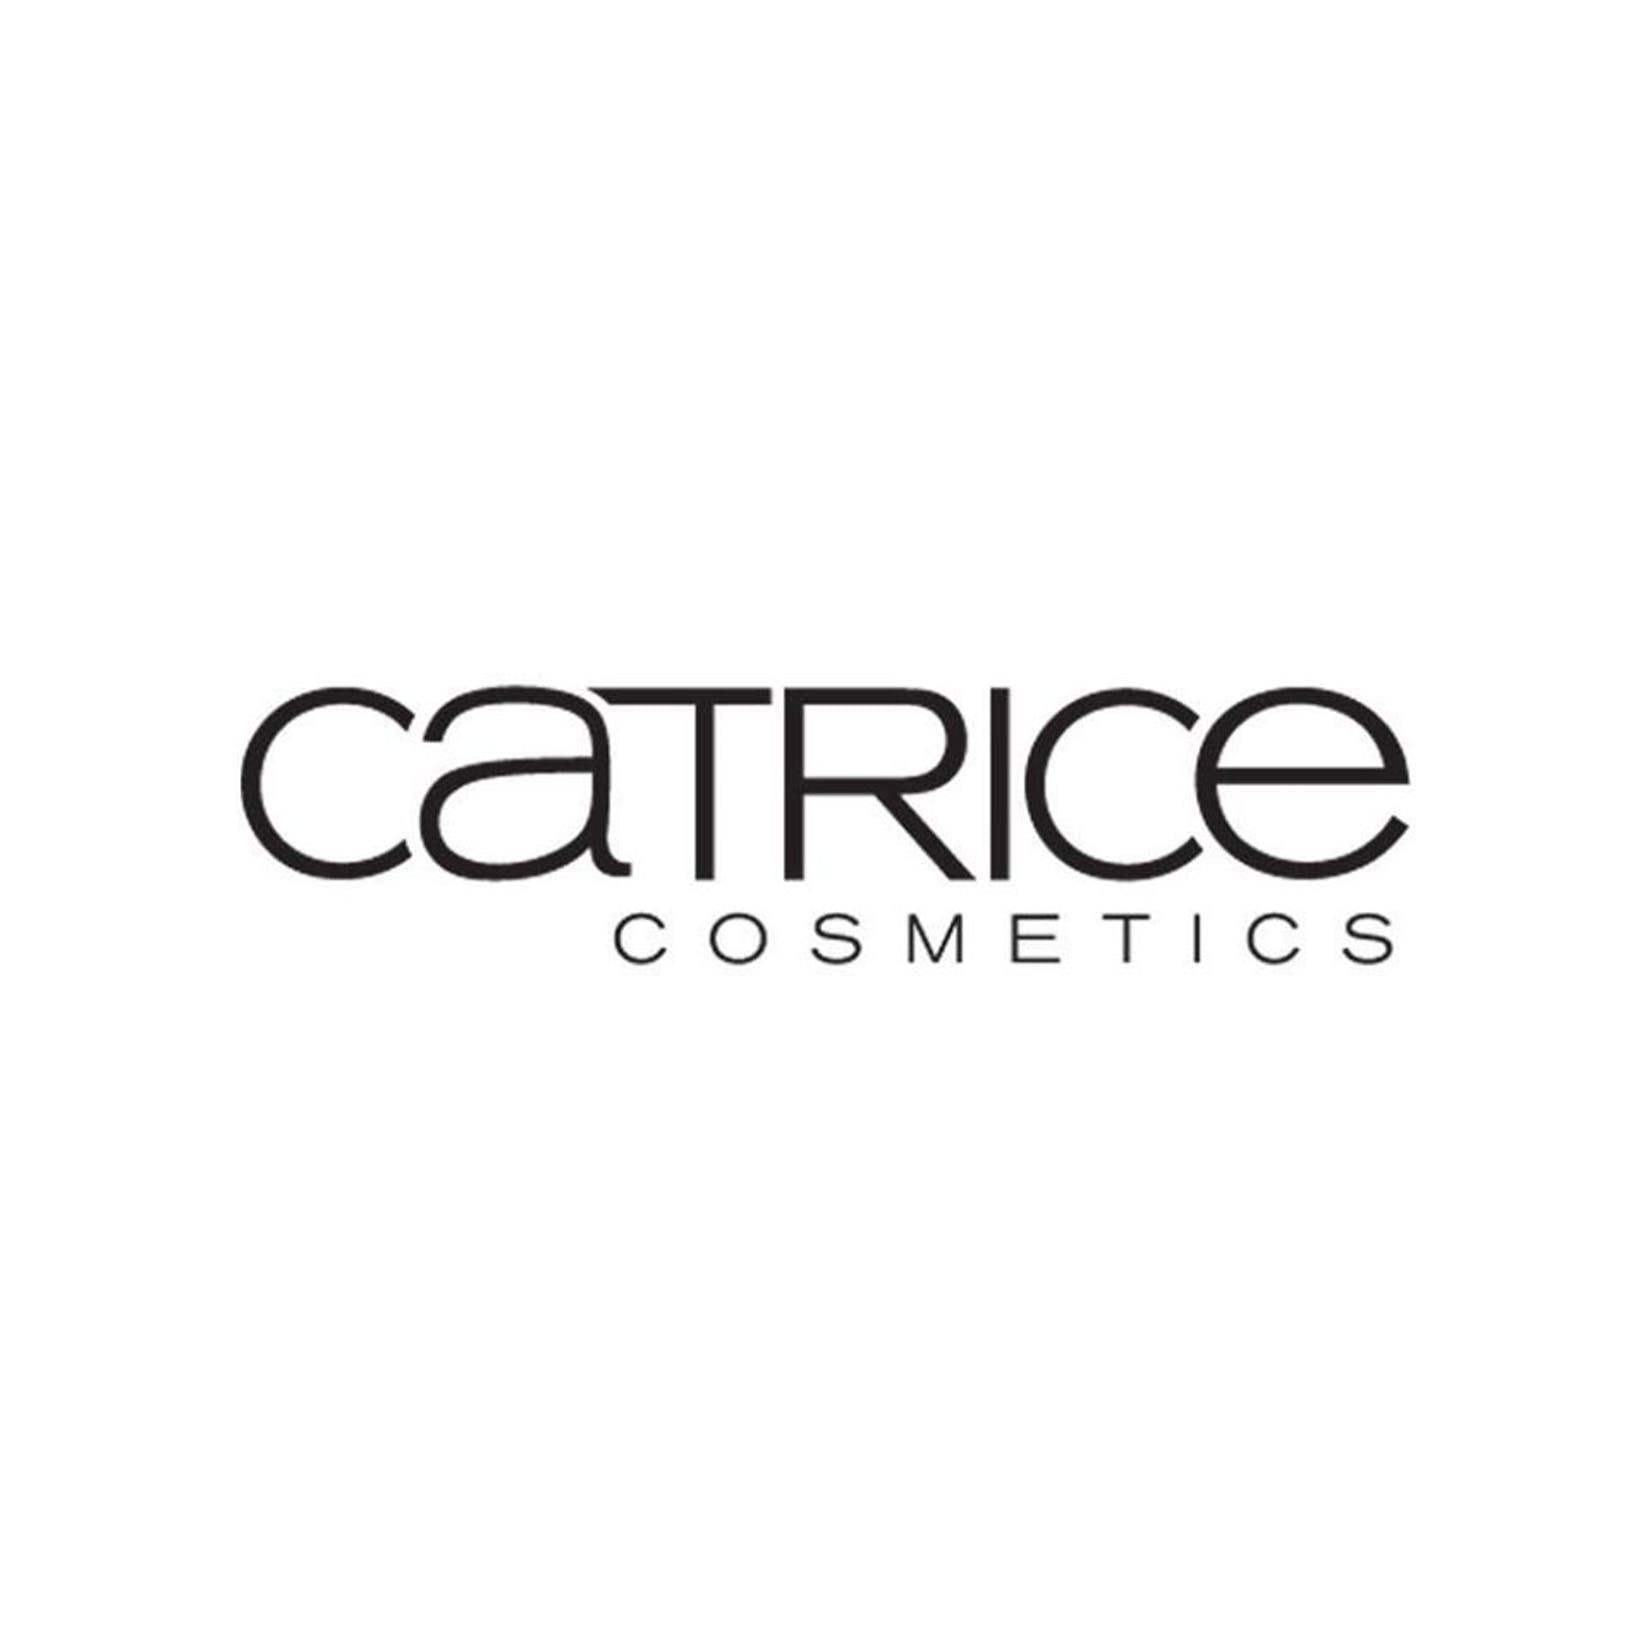 Catrice Cosmetics | Beauty